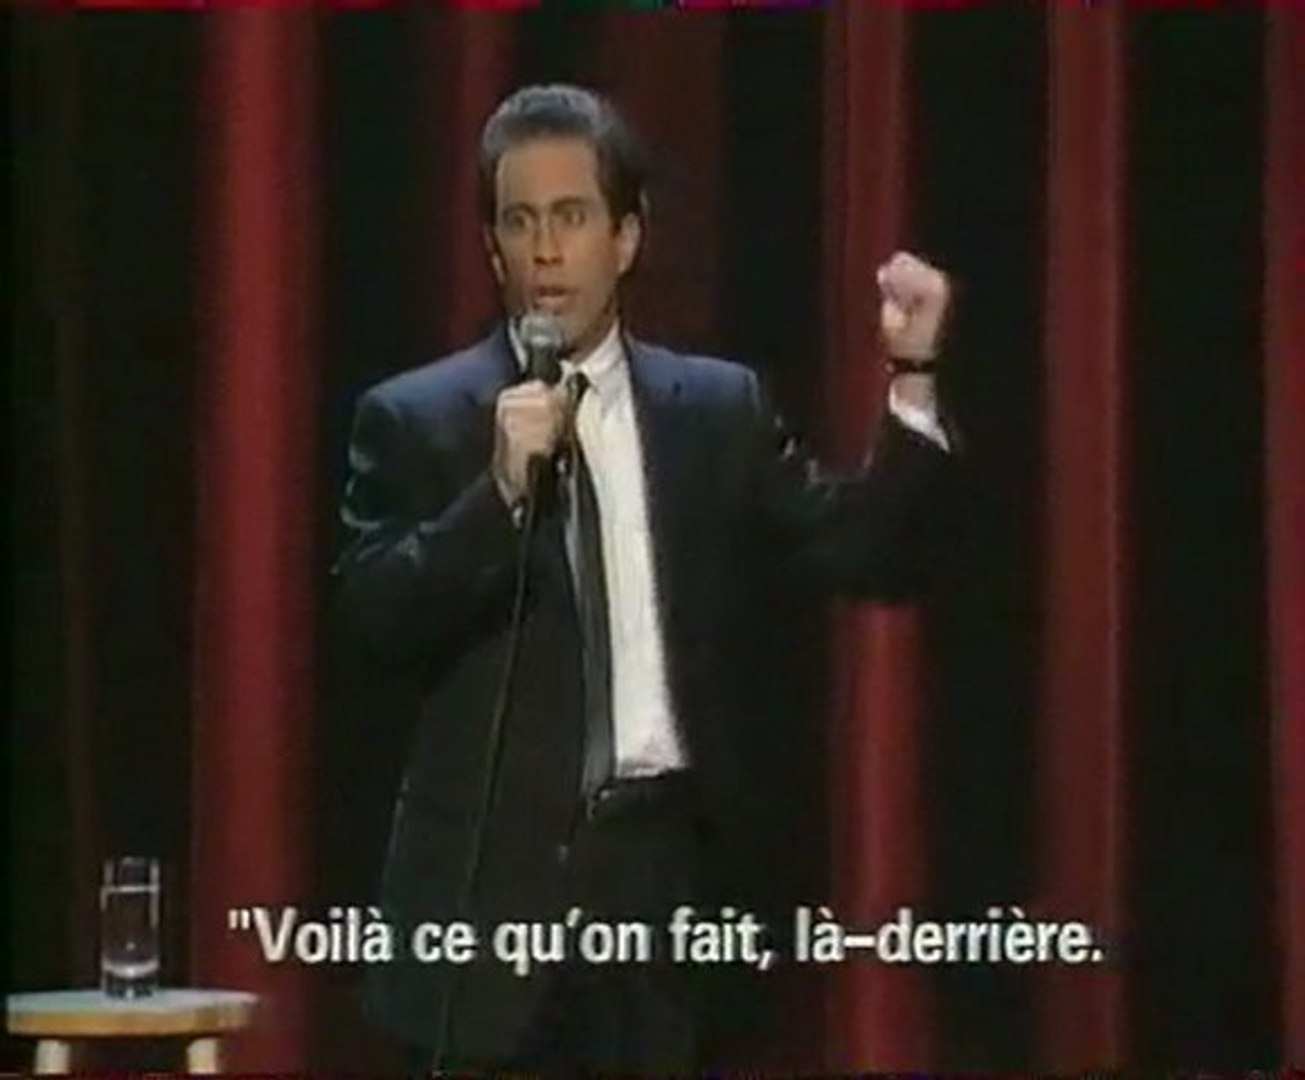 Seinfeld - I'm telling you for the last time VOSTF 2e partie